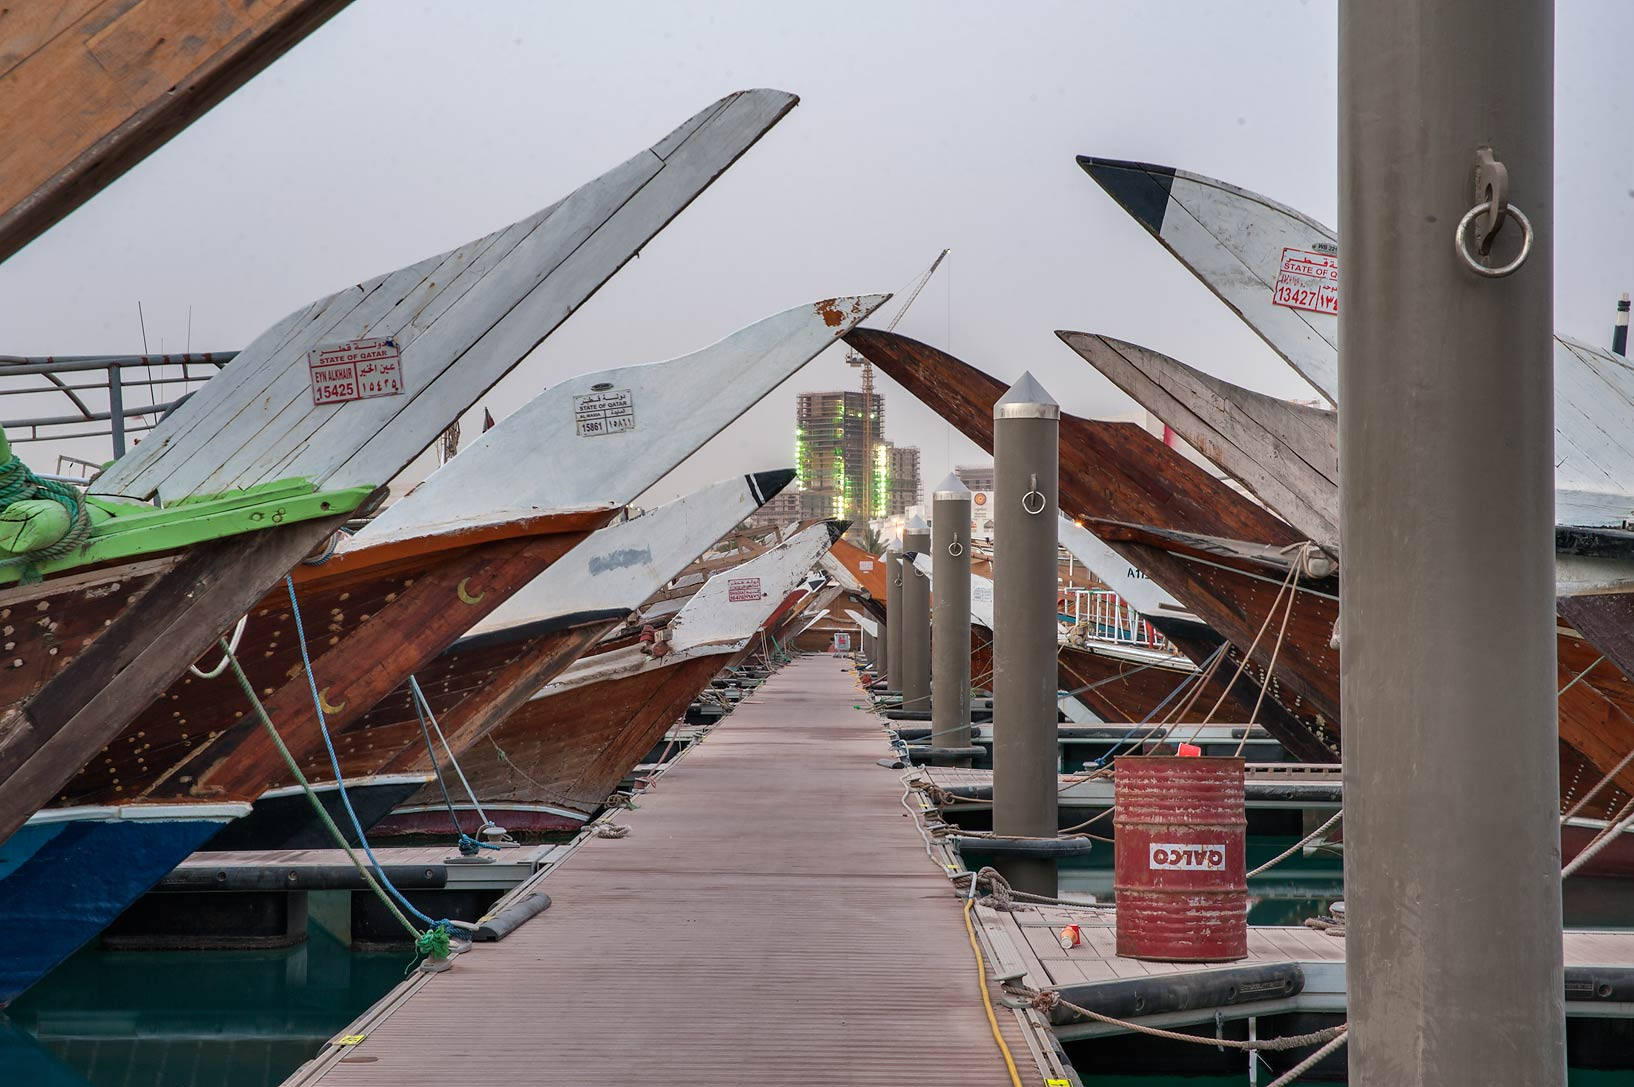 Dhow fishing boats on a boat pier. Doha, Qatar